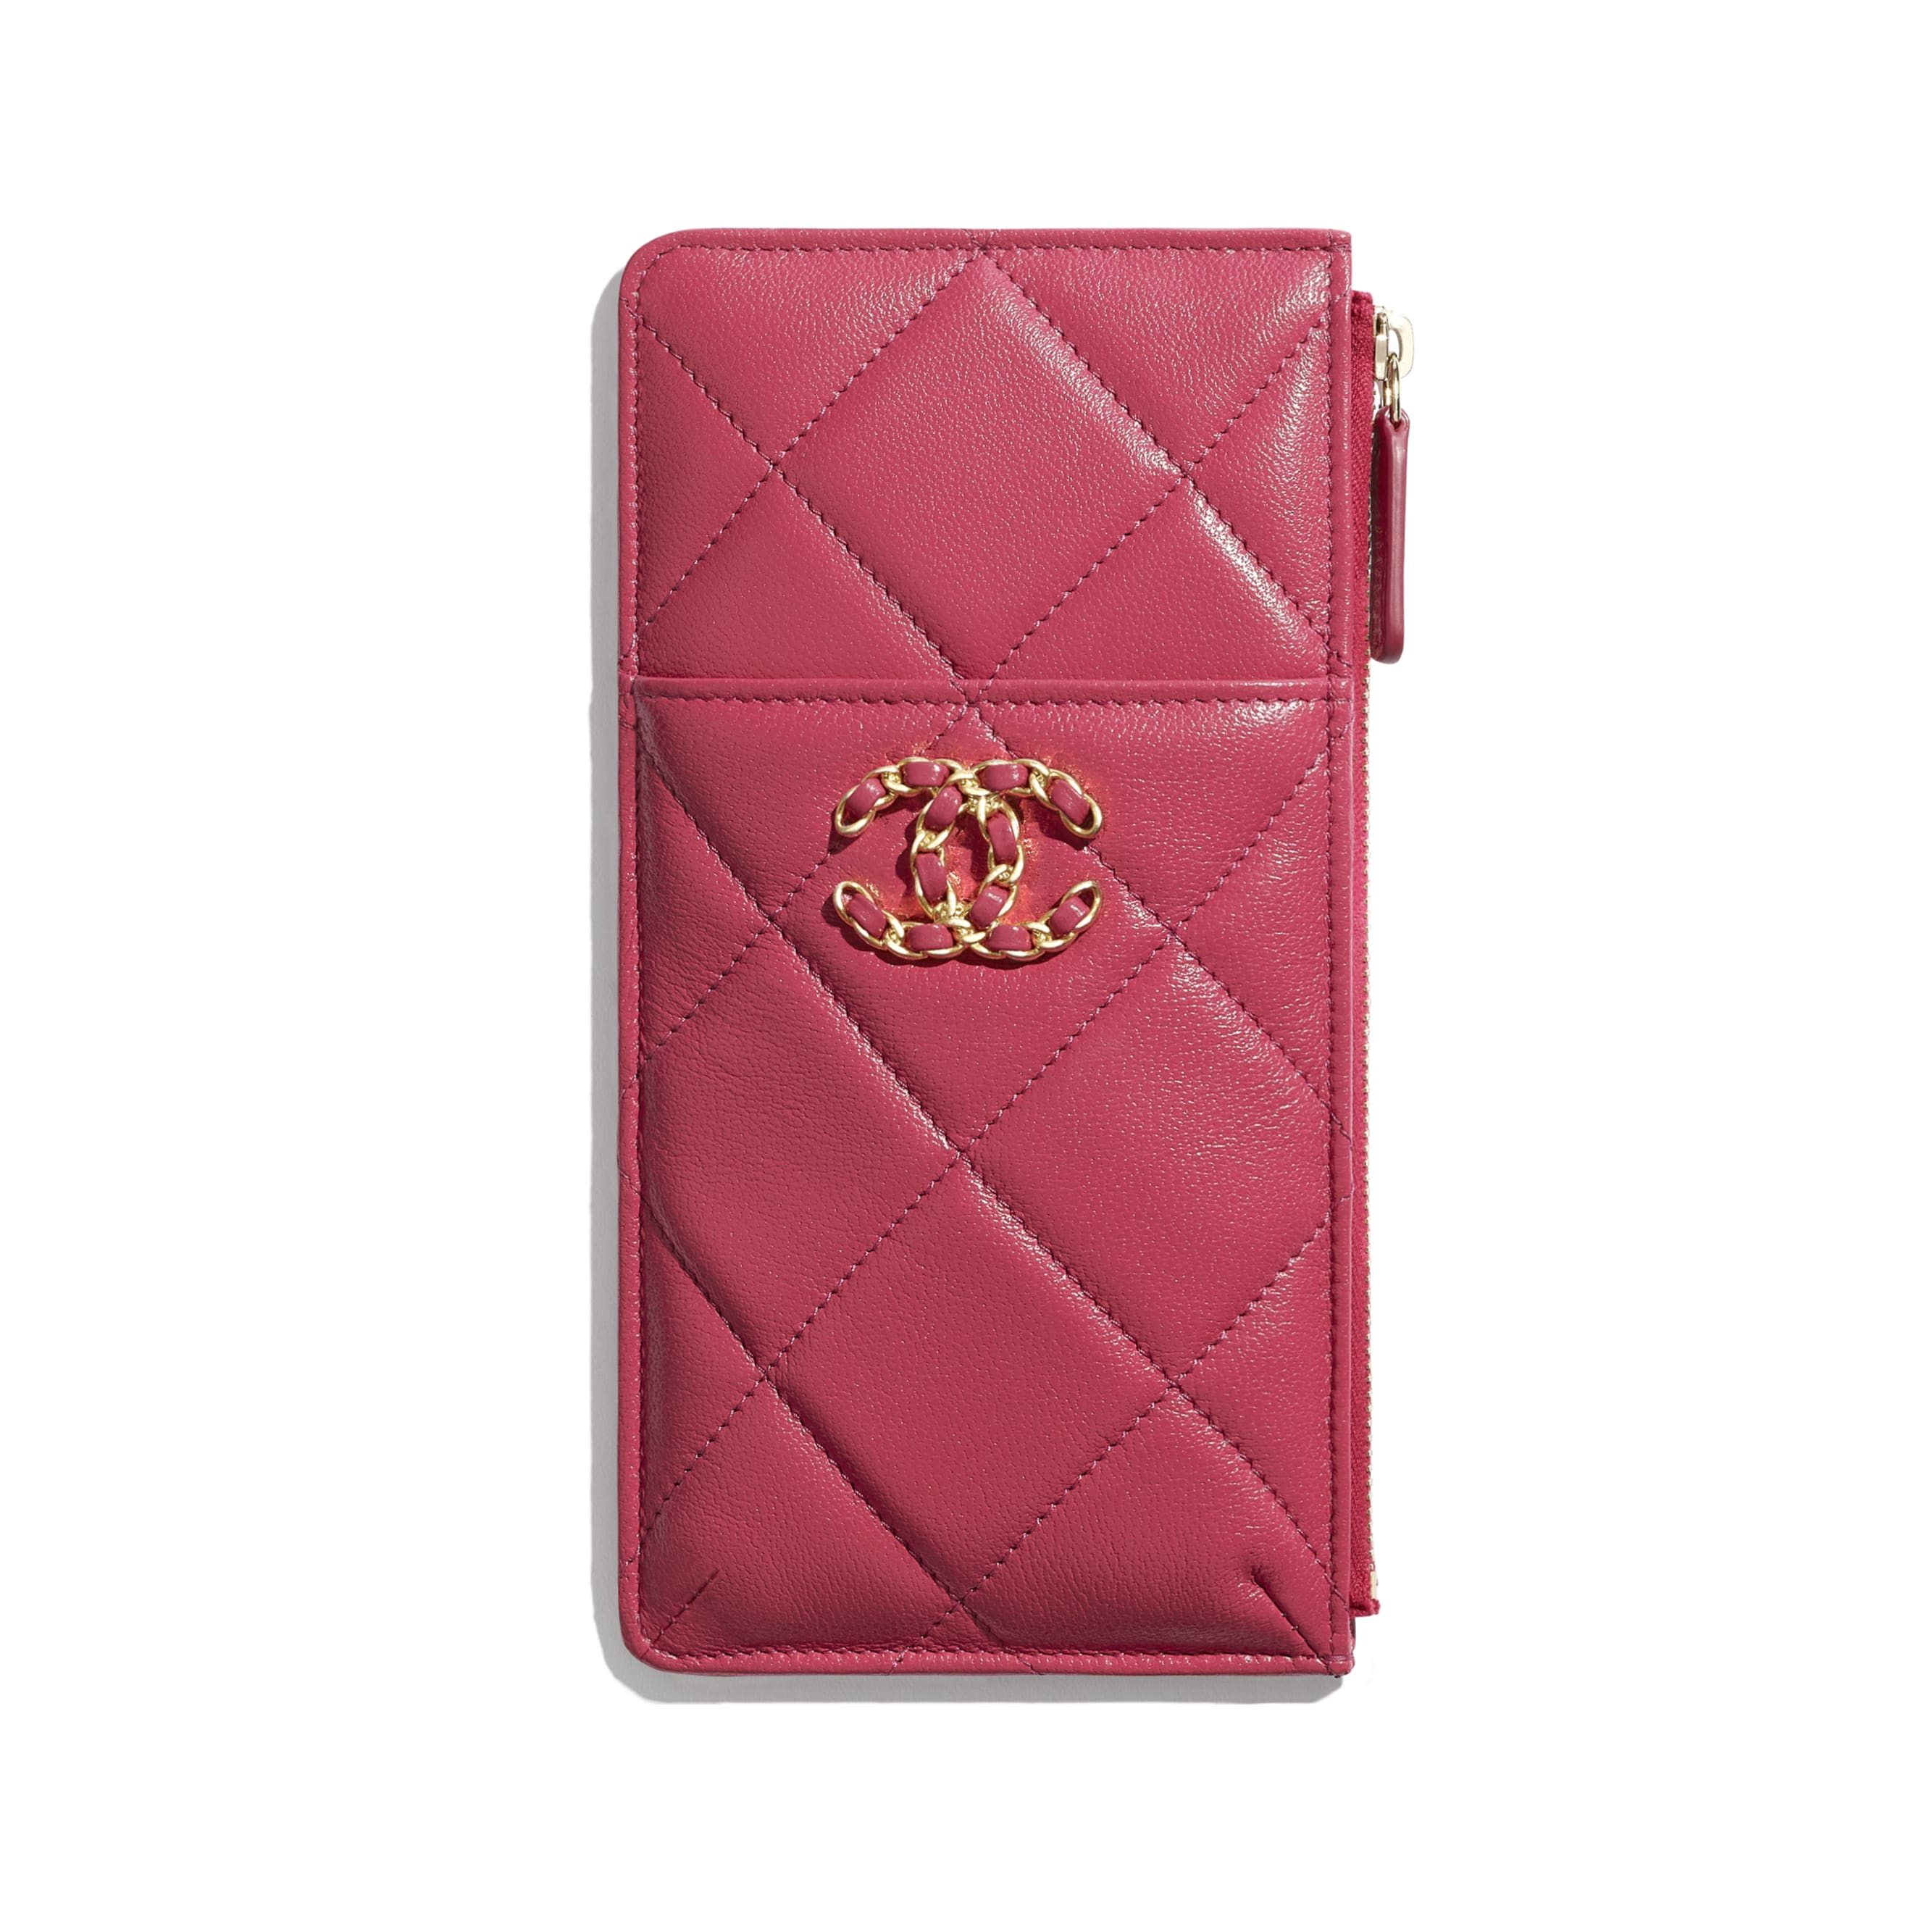 CHANEL 19 Phone & Card Holder - Dark Pink - Lambskin, Gold-Tone, Silver-Tone & Ruthenium-Finish Metal - Default view - see standard sized version